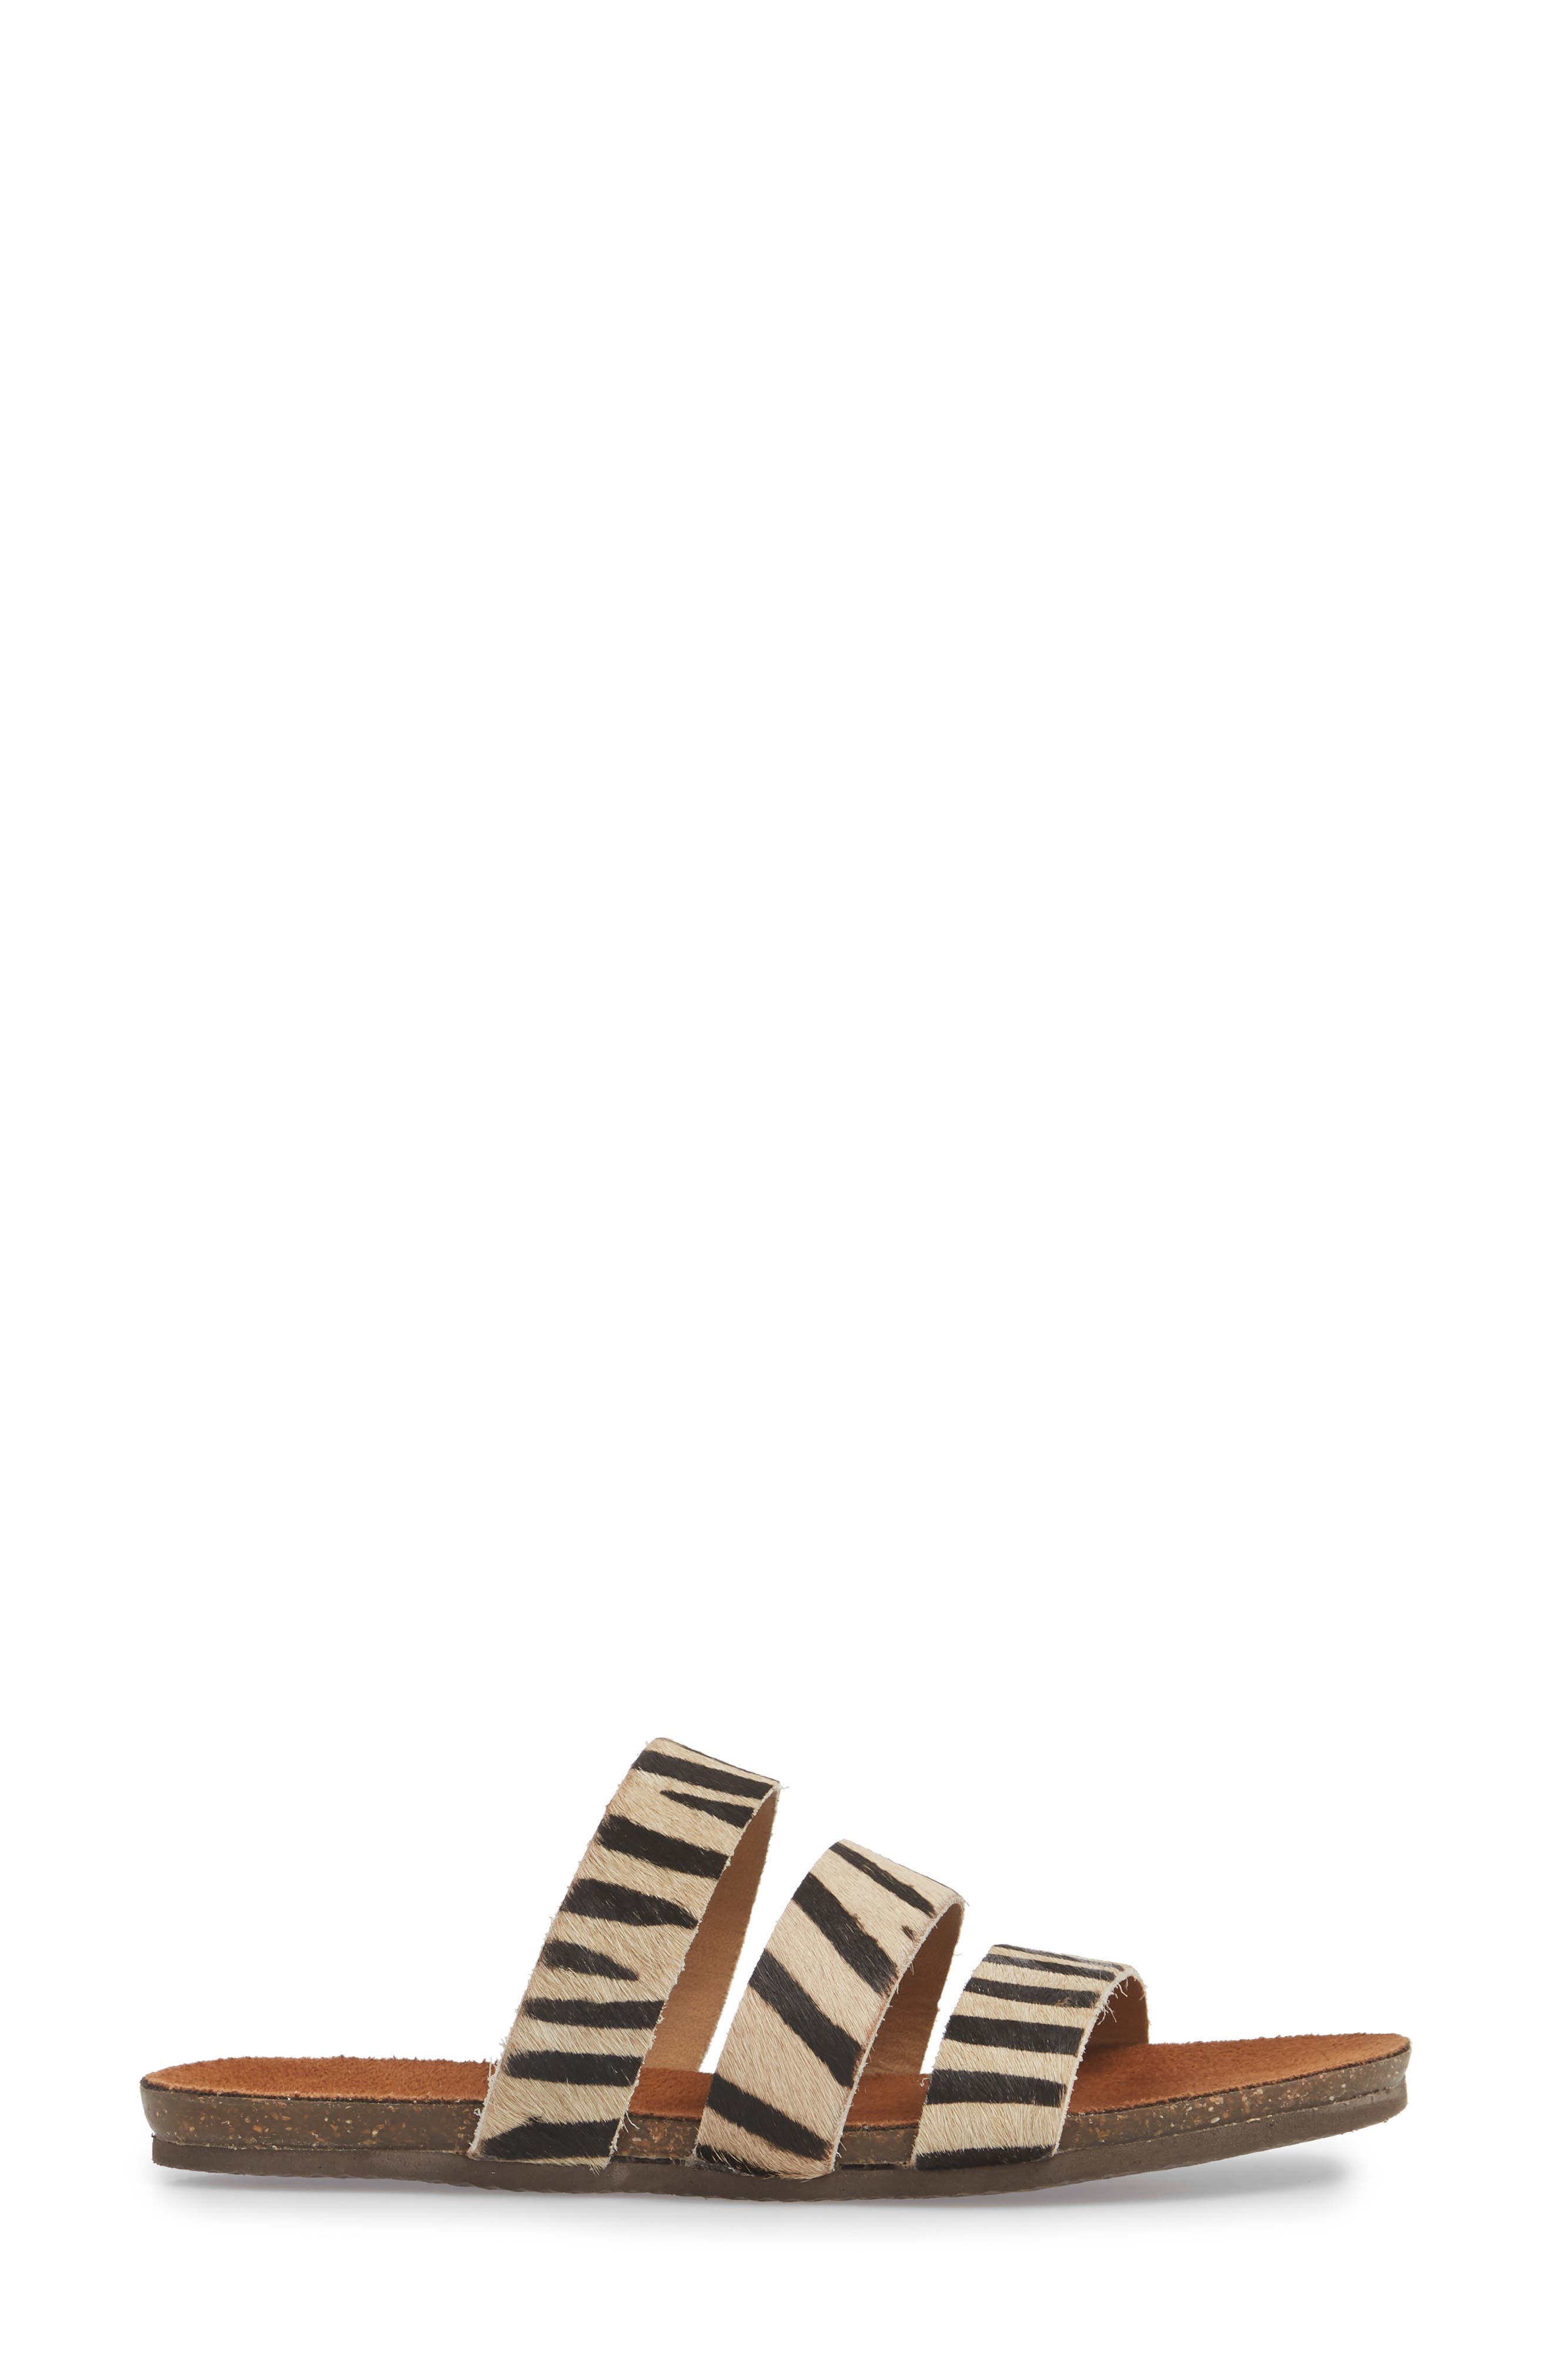 Florence Slide Sandal,                             Alternate thumbnail 3, color,                             ZEBRA CALF HAIR